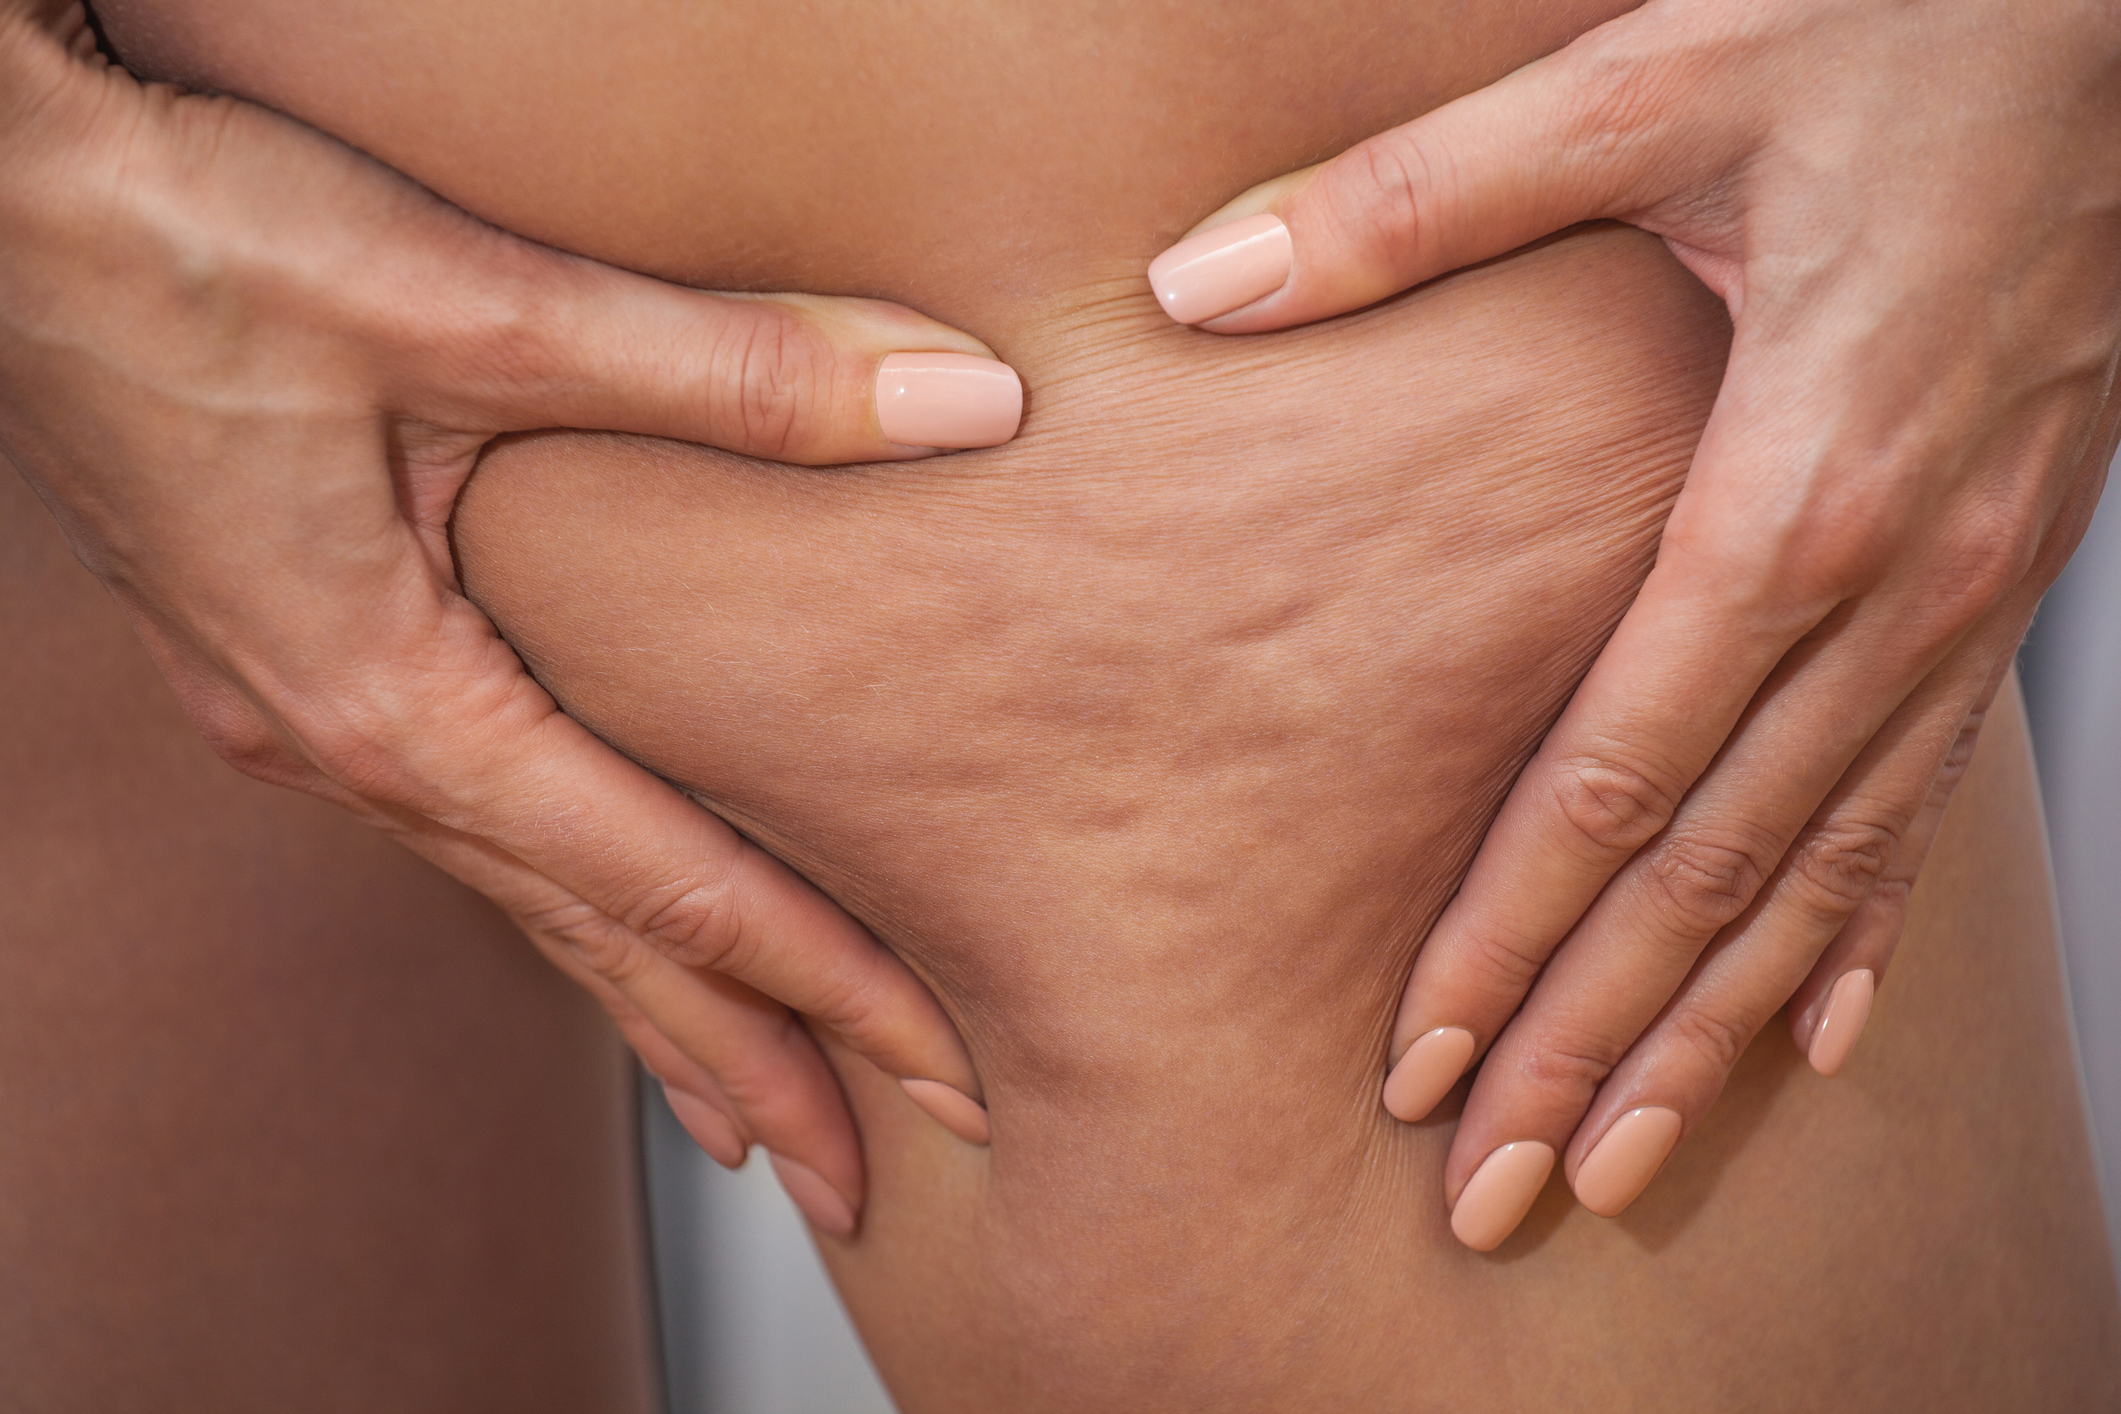 Cellulite: Causes, Prevention, Myths, Facts and Treatment